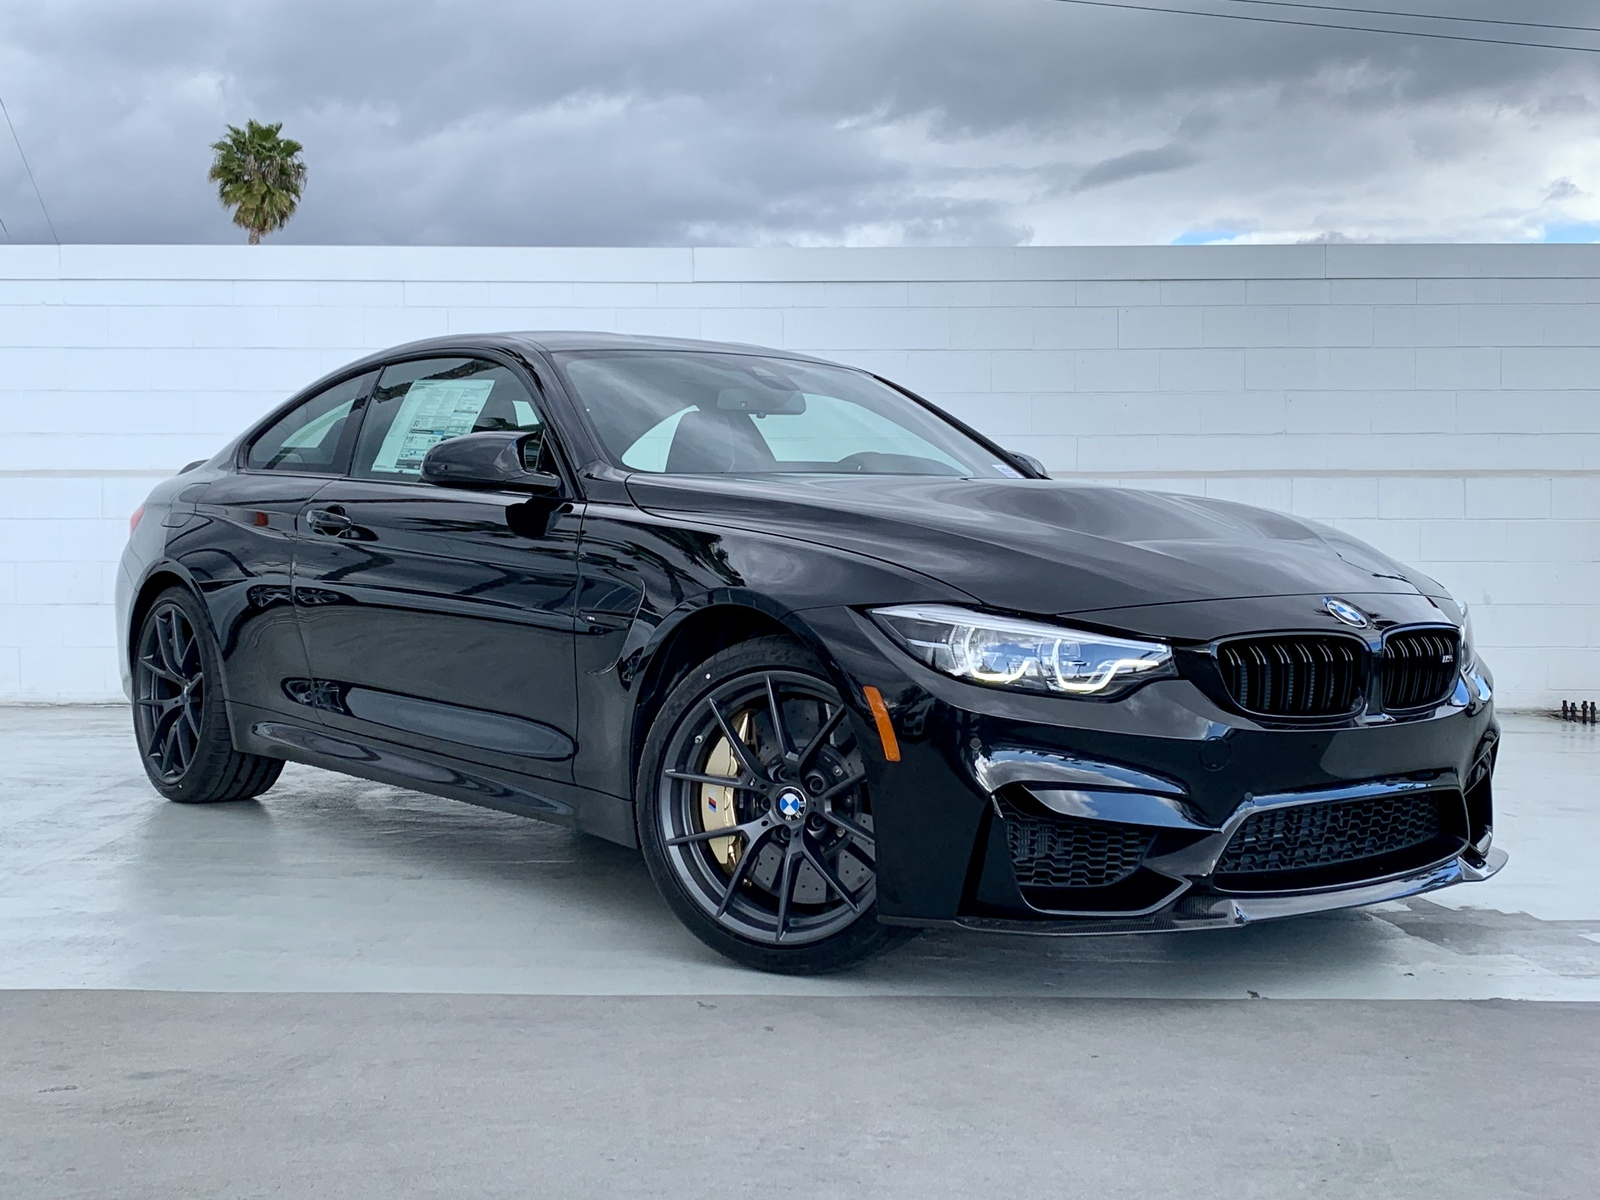 New 2019 Bmw M4 Cs Cs Coupe In North Hollywood 19684 Century West Bmw